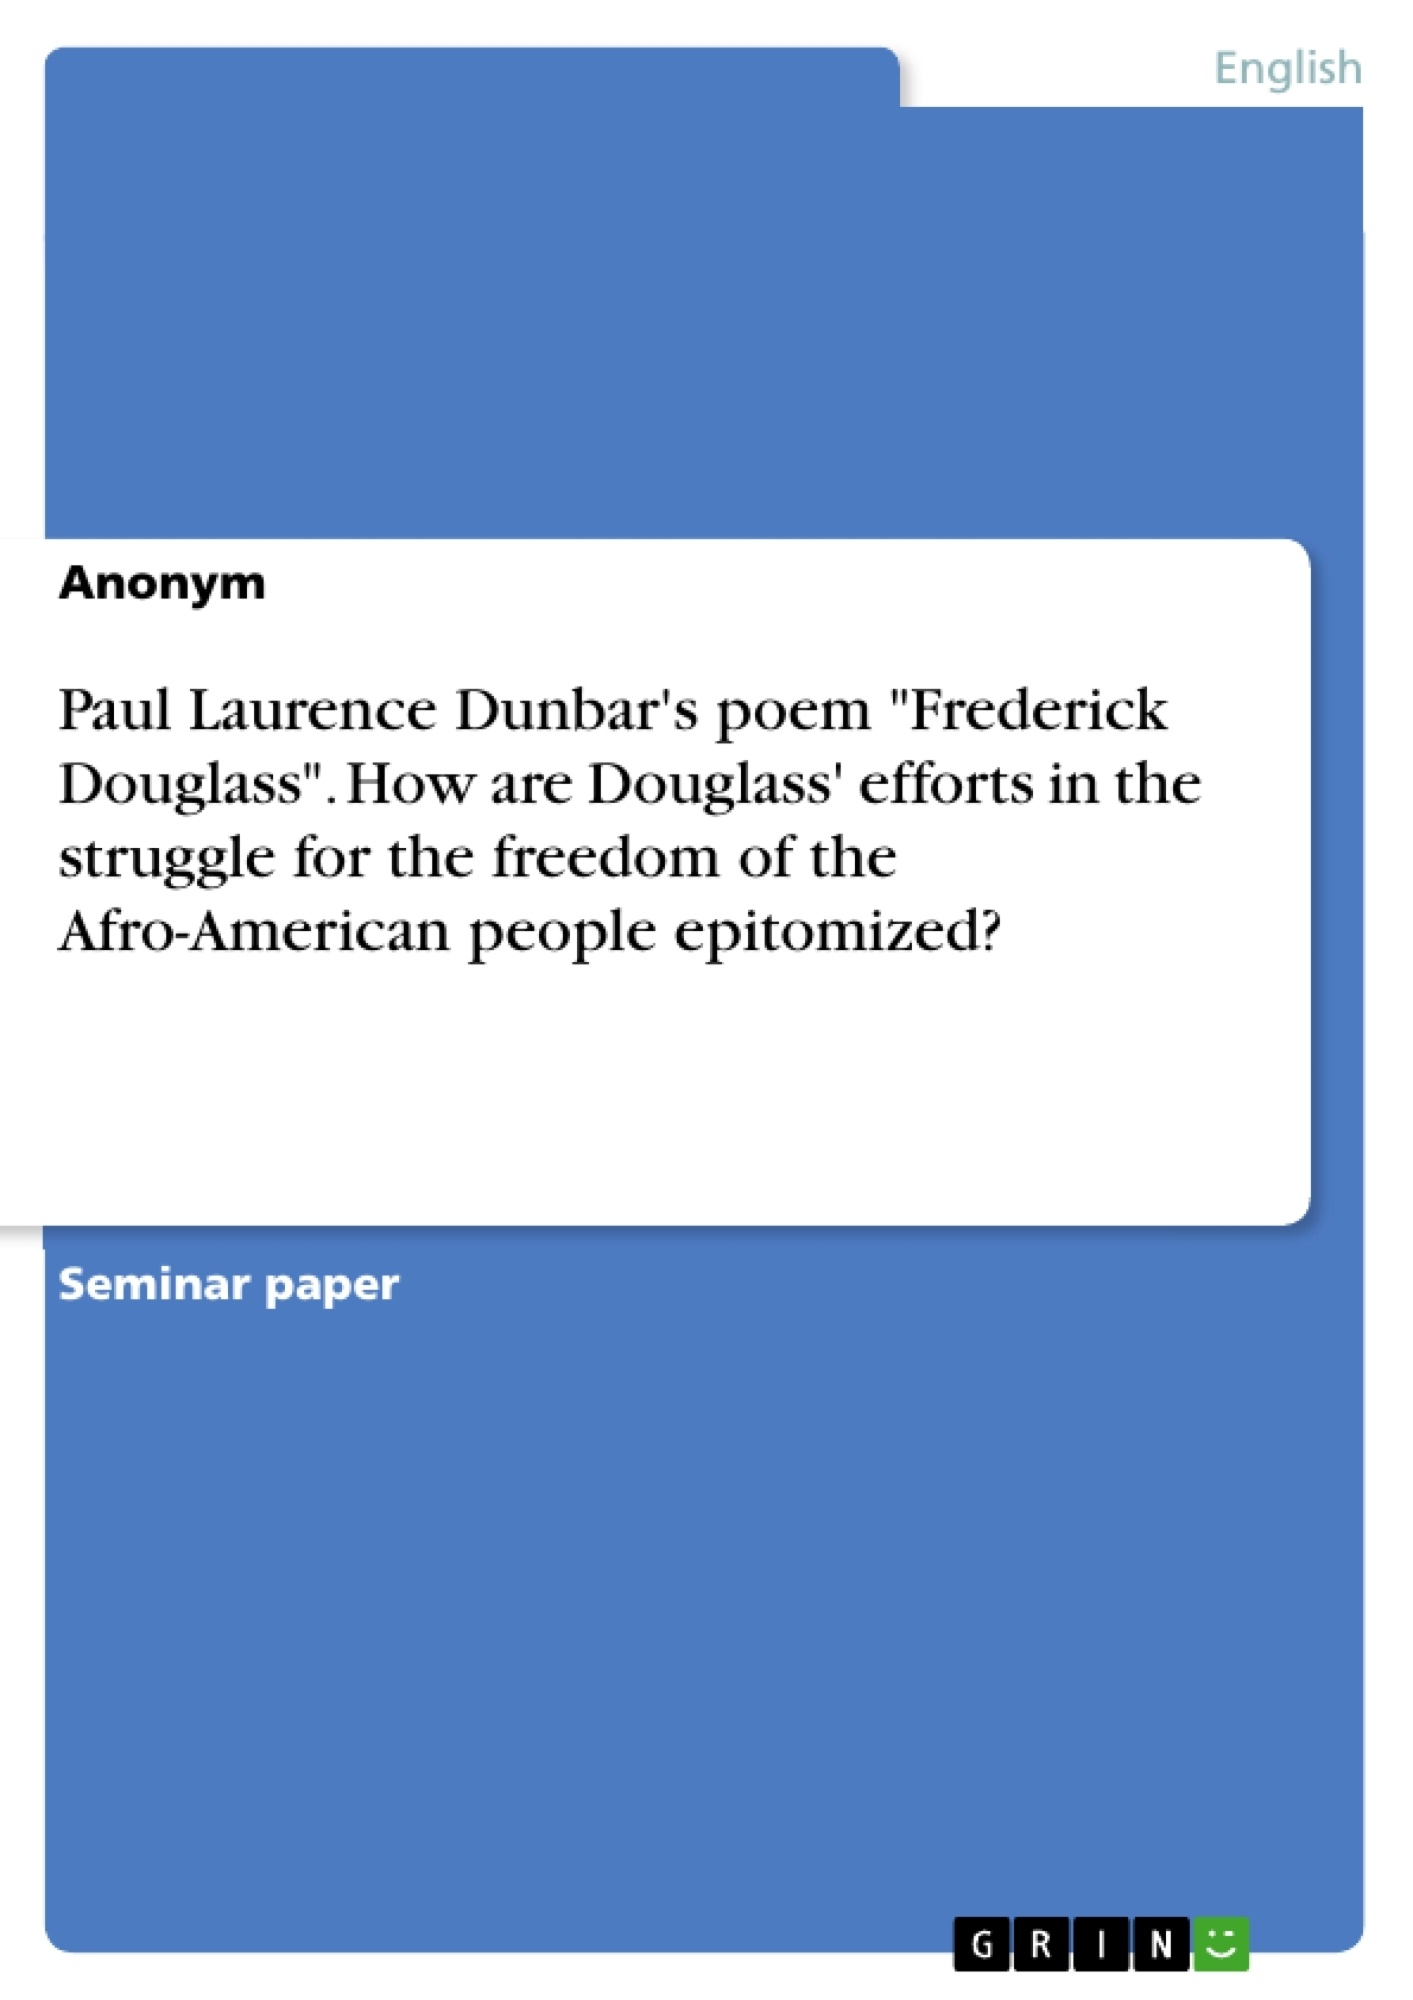 """Title: Paul Laurence Dunbar's poem """"Frederick Douglass"""". How are Douglass' efforts in the struggle for the freedom of the Afro-American people epitomized?"""